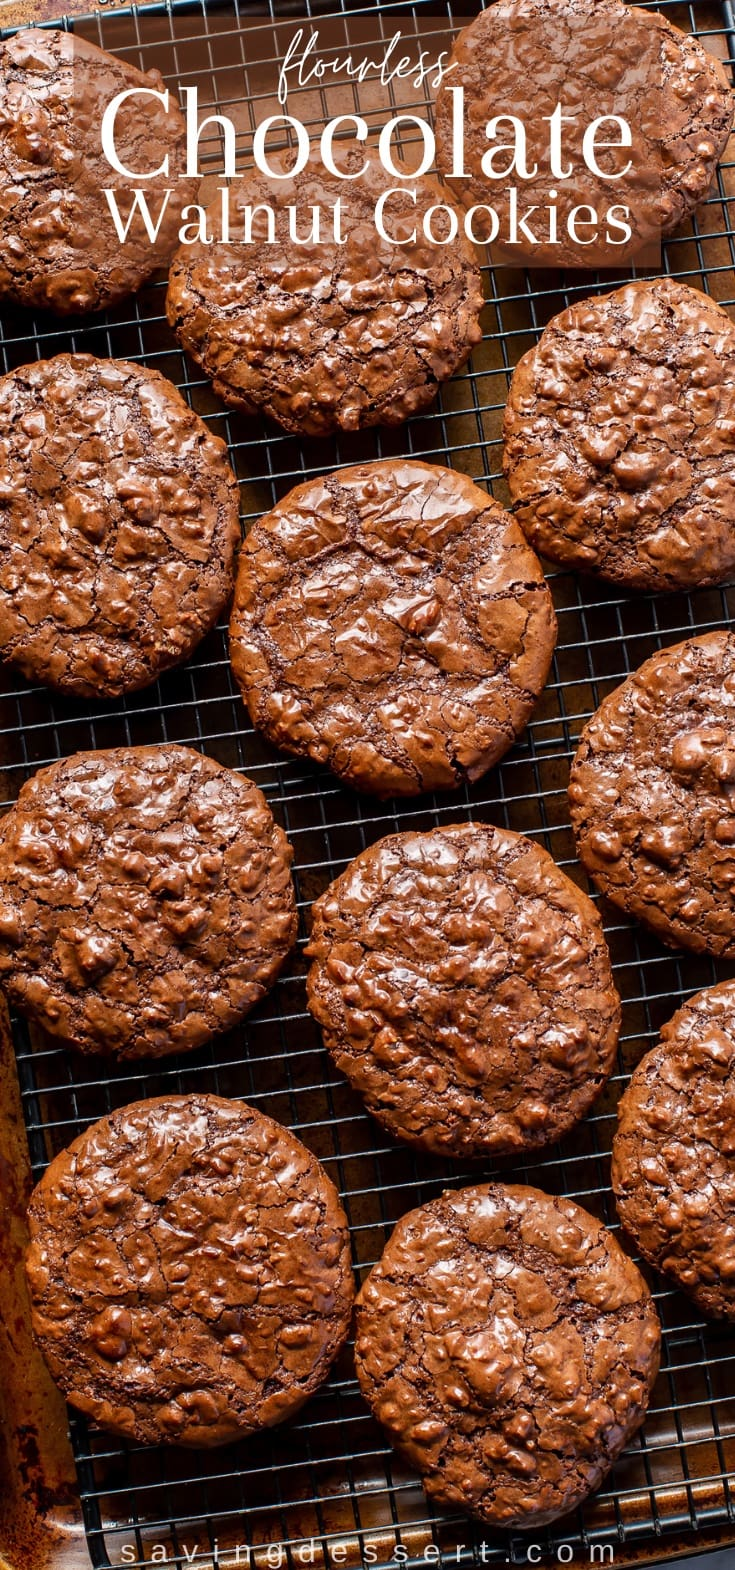 A cooling rack covered with chocolate walnut cookies